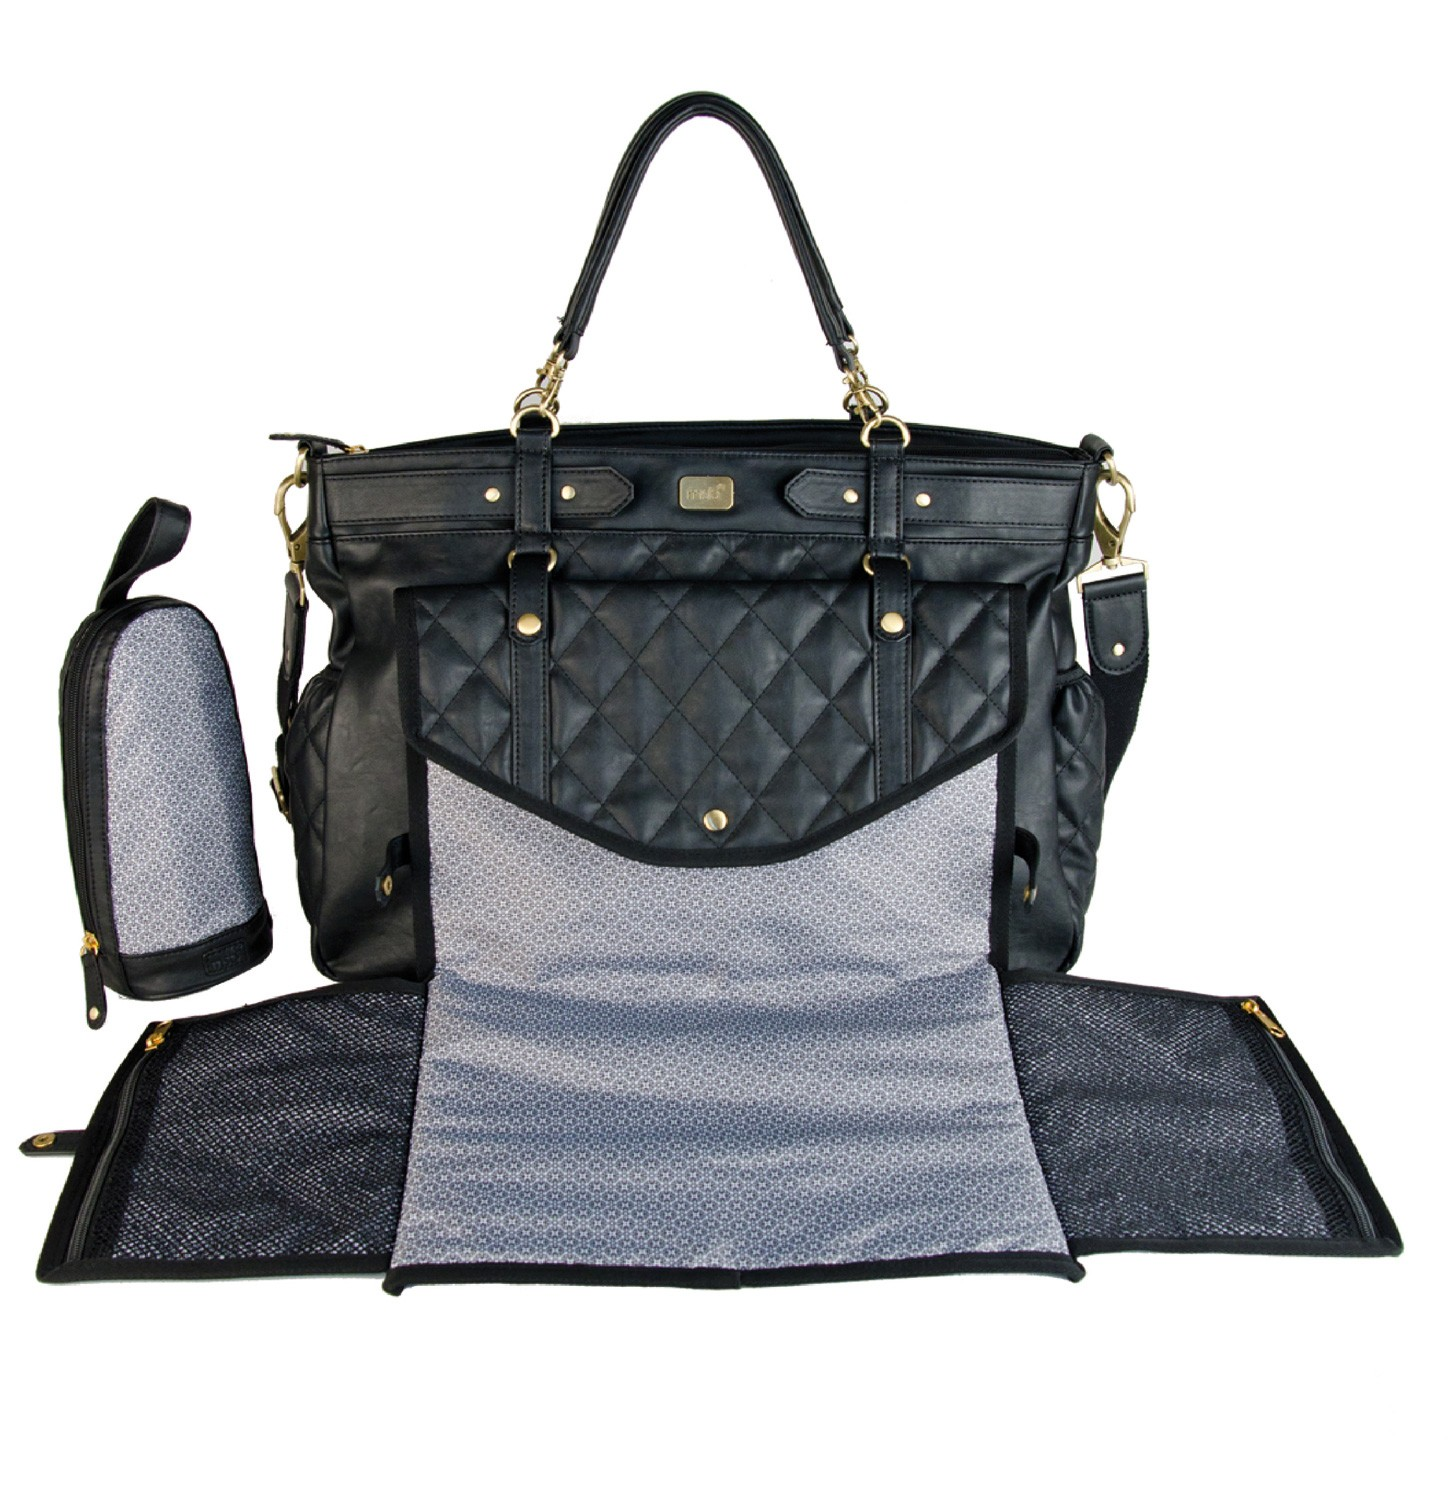 magic stroller bag sac langer lady chic black little b b s pu riculture. Black Bedroom Furniture Sets. Home Design Ideas